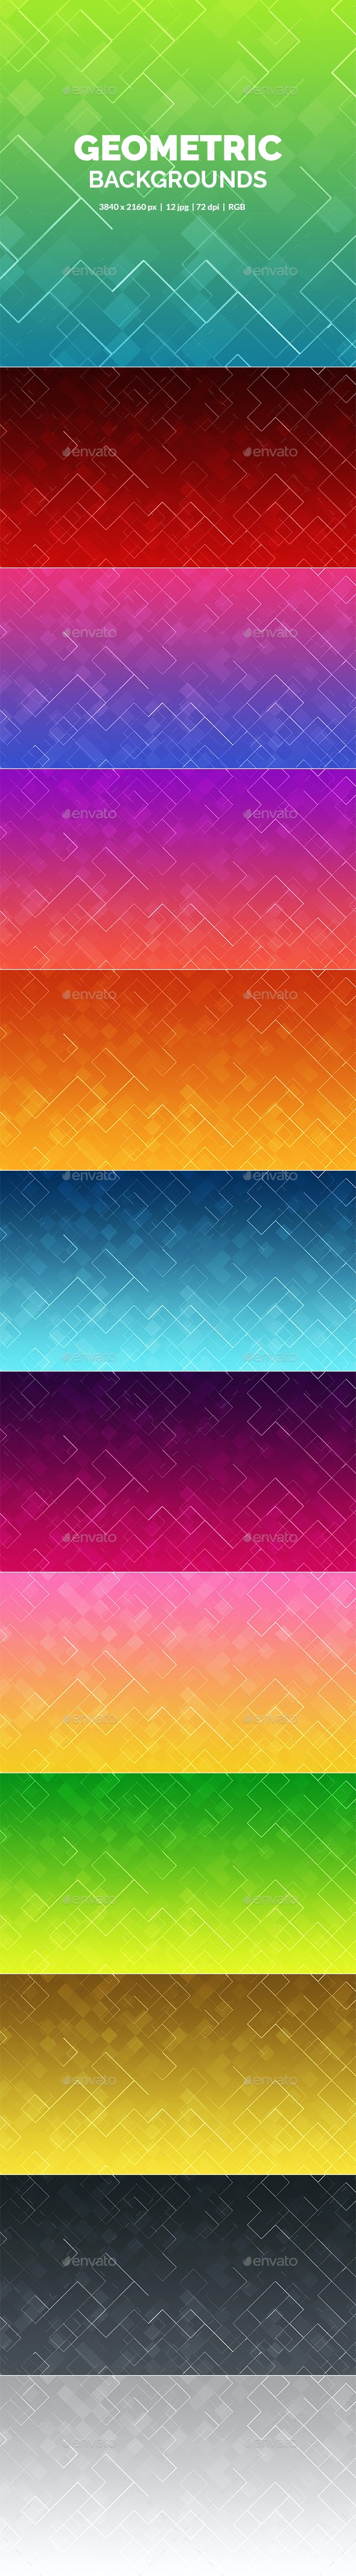 Geometric Backgrounds - Backgrounds Graphics